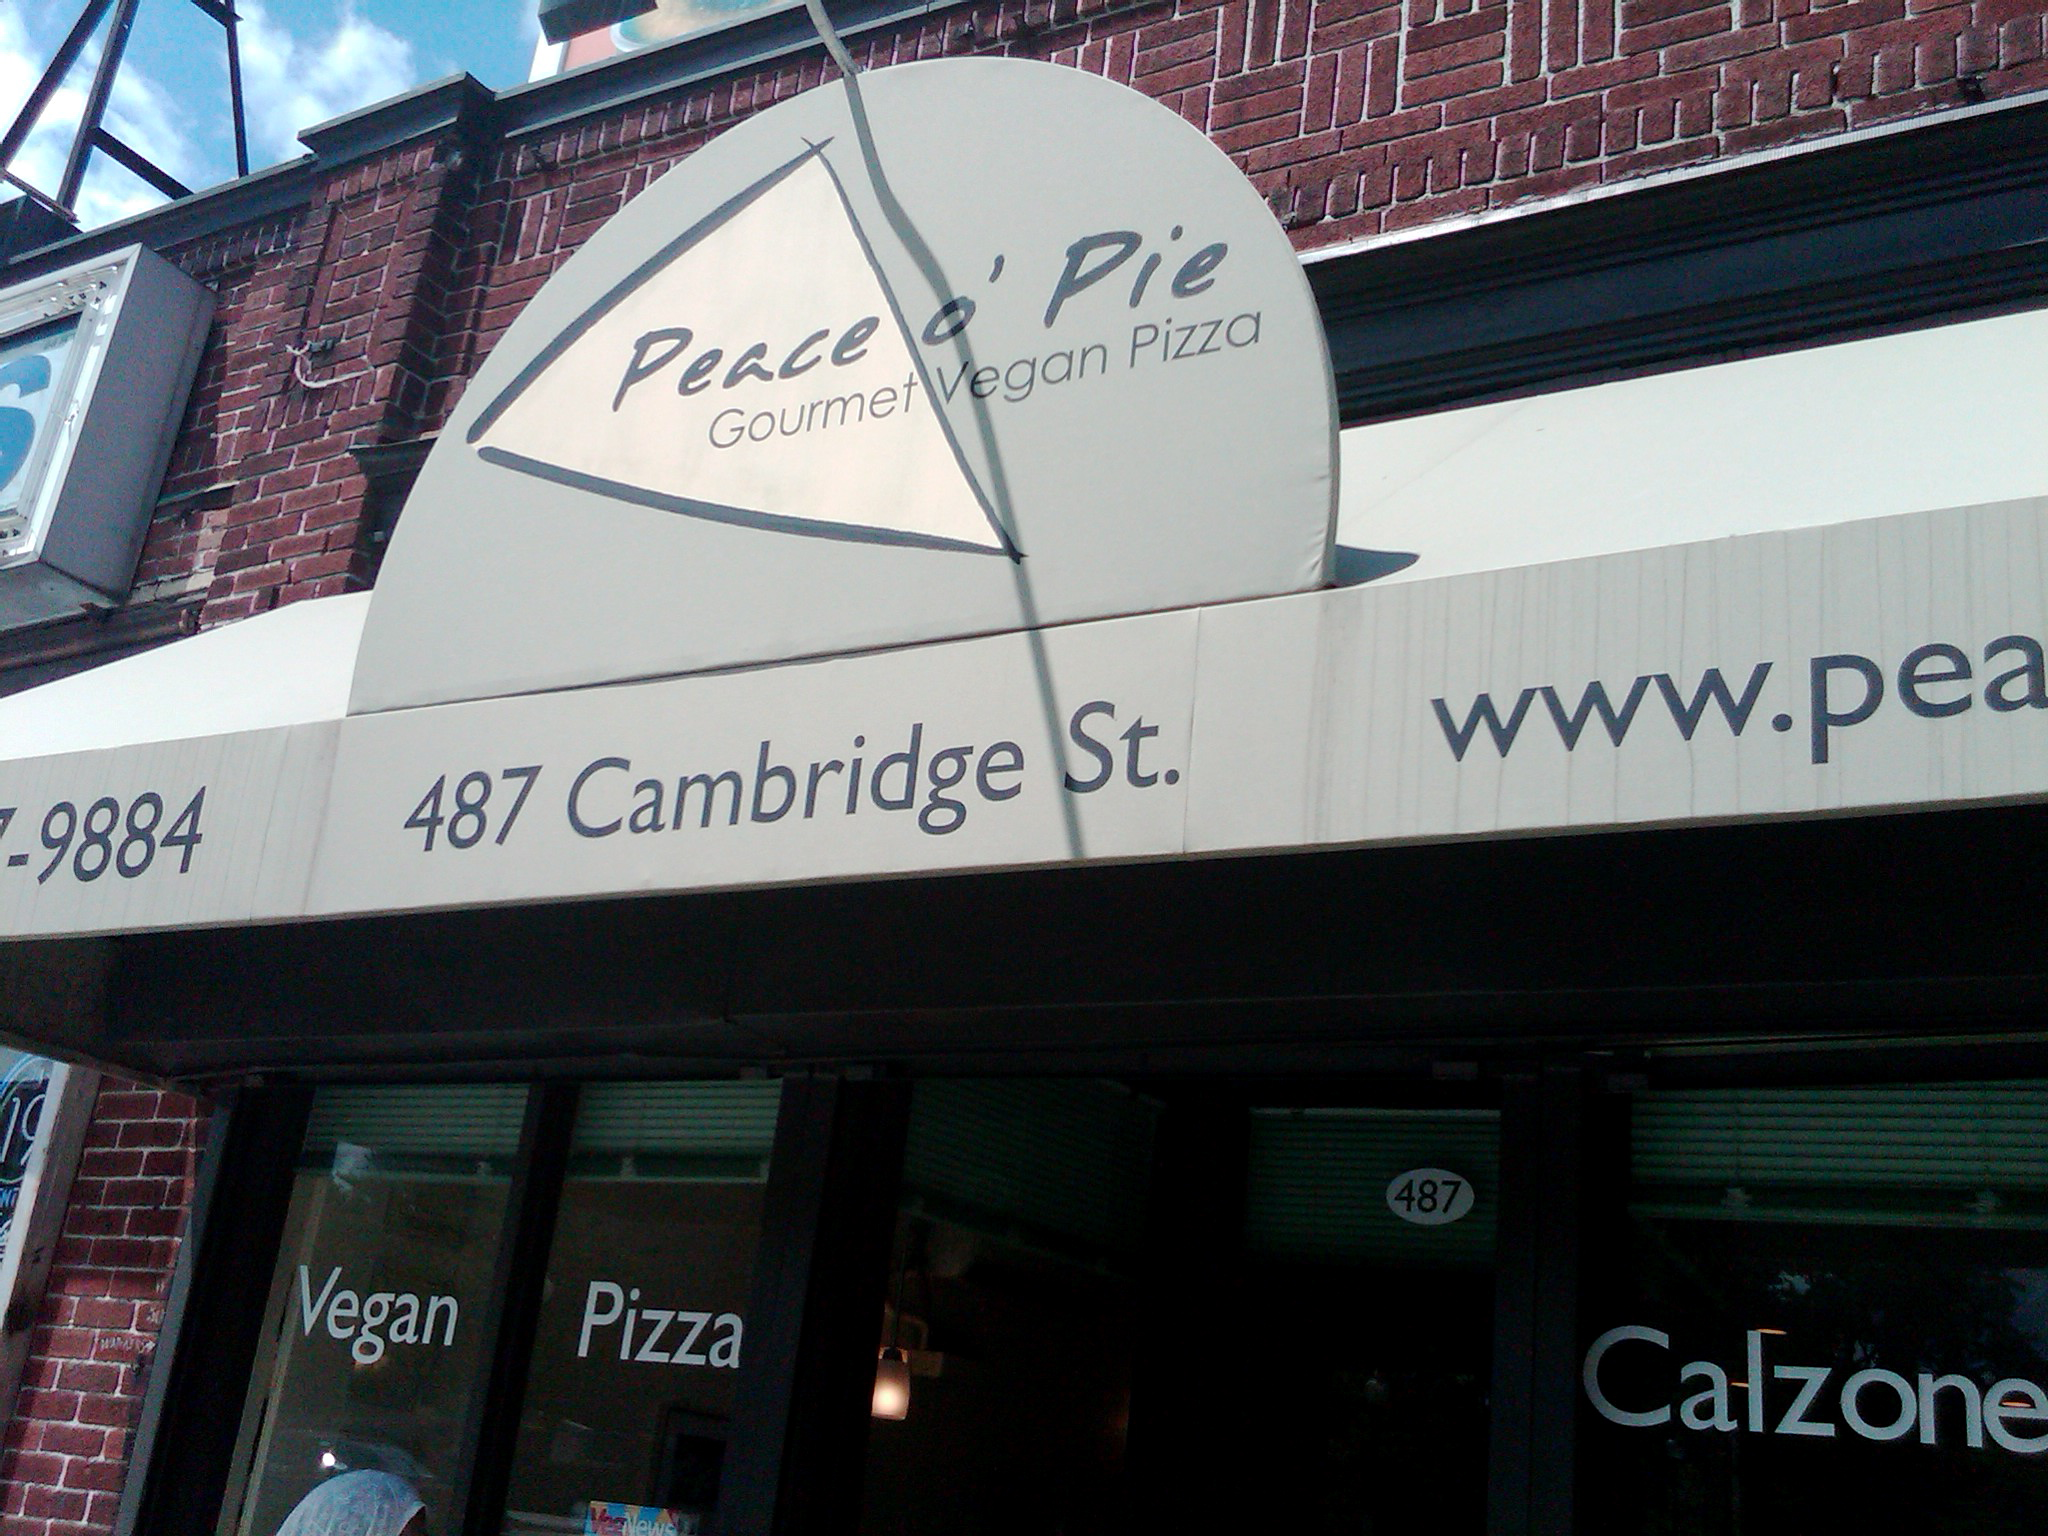 Peace 'o Pie was a fabulous place to grab a slice (or a pie) of vegan pizza.